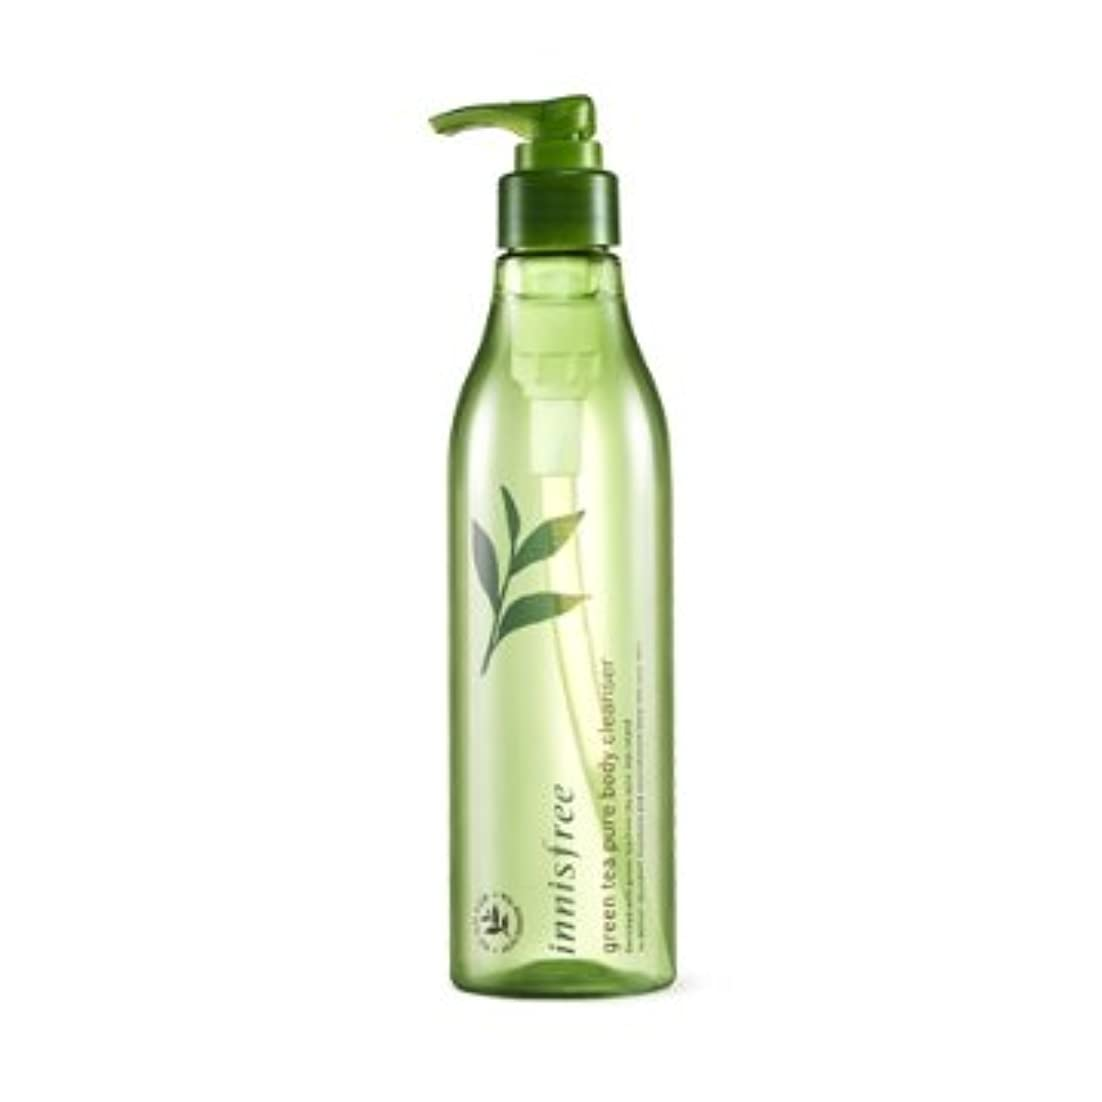 【イニスフリー】Innisfree green tea pure body cleanser - 300ml (韓国直送品) (SHOPPINGINSTAGRAM)